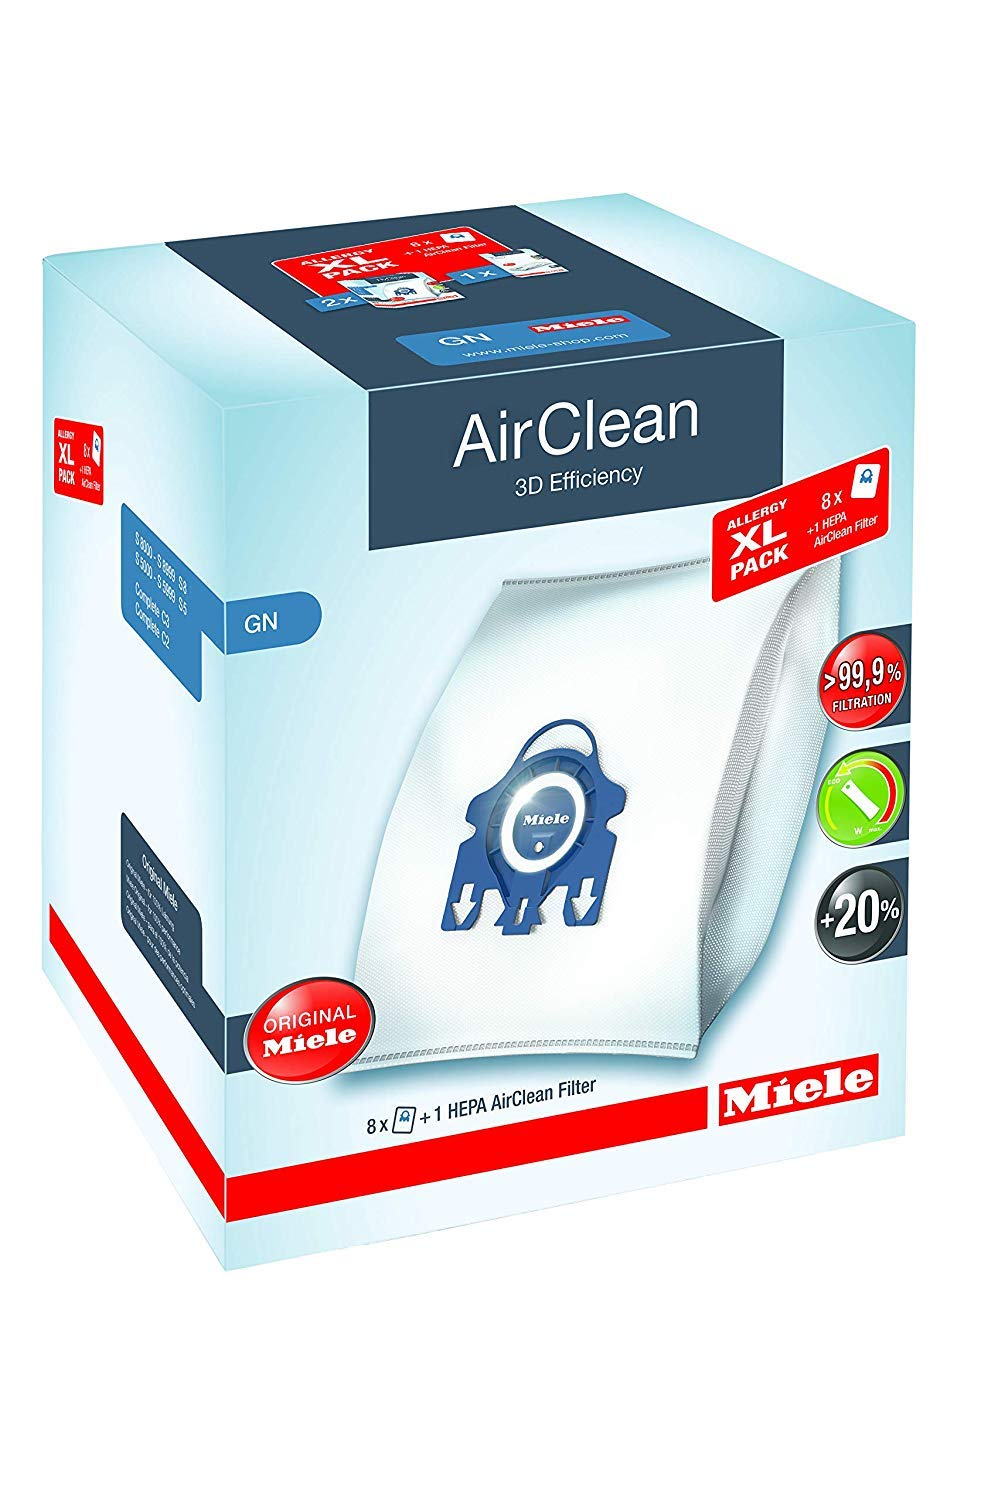 Miele AirClean 3D Efficiency Dust Bag, Type GN, Allergy XL-Pack, 8 Bags, 2 Pre-Motor Filters, and 1 HEPA Filter by Miele